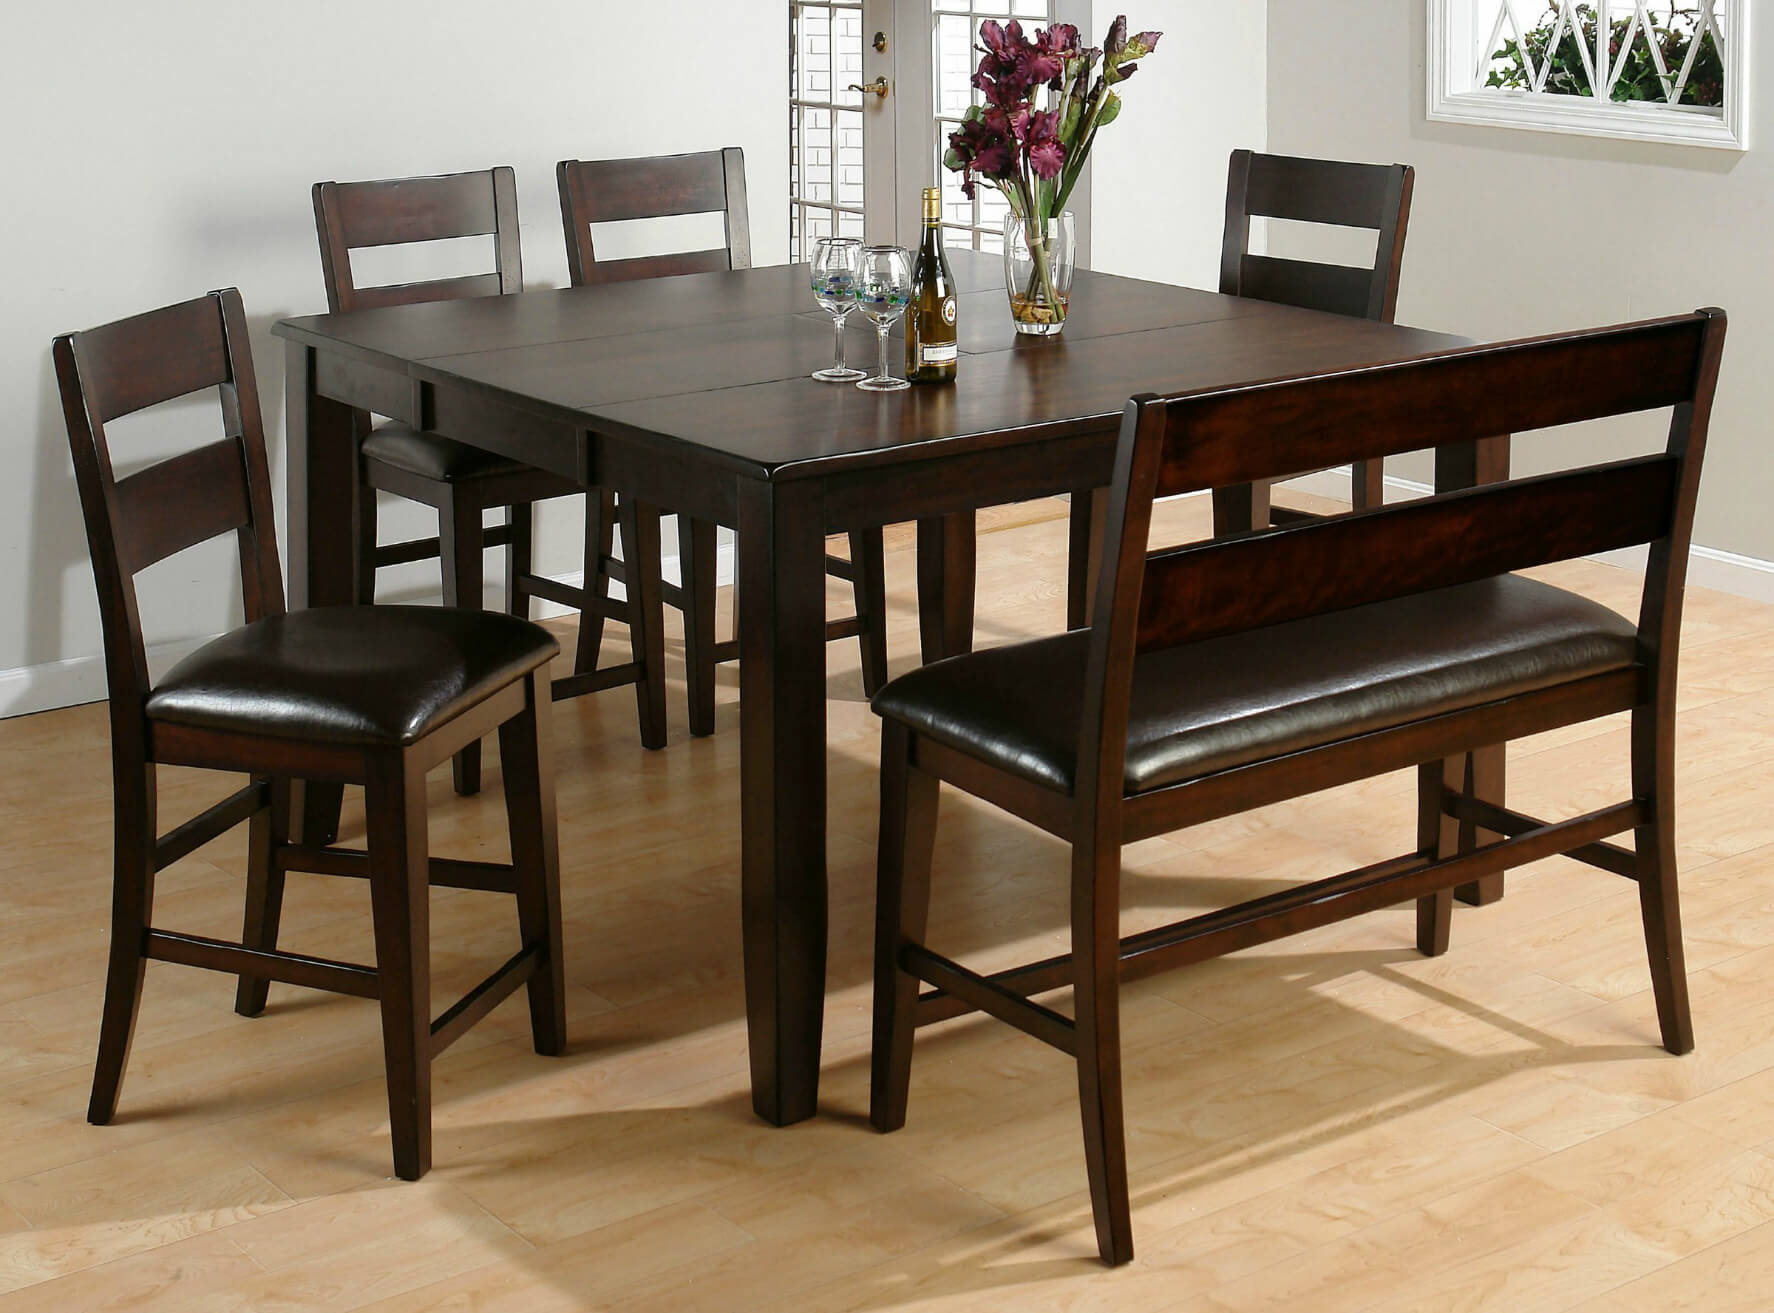 Here s a counter height square dining room table with bench moreover the bench includes